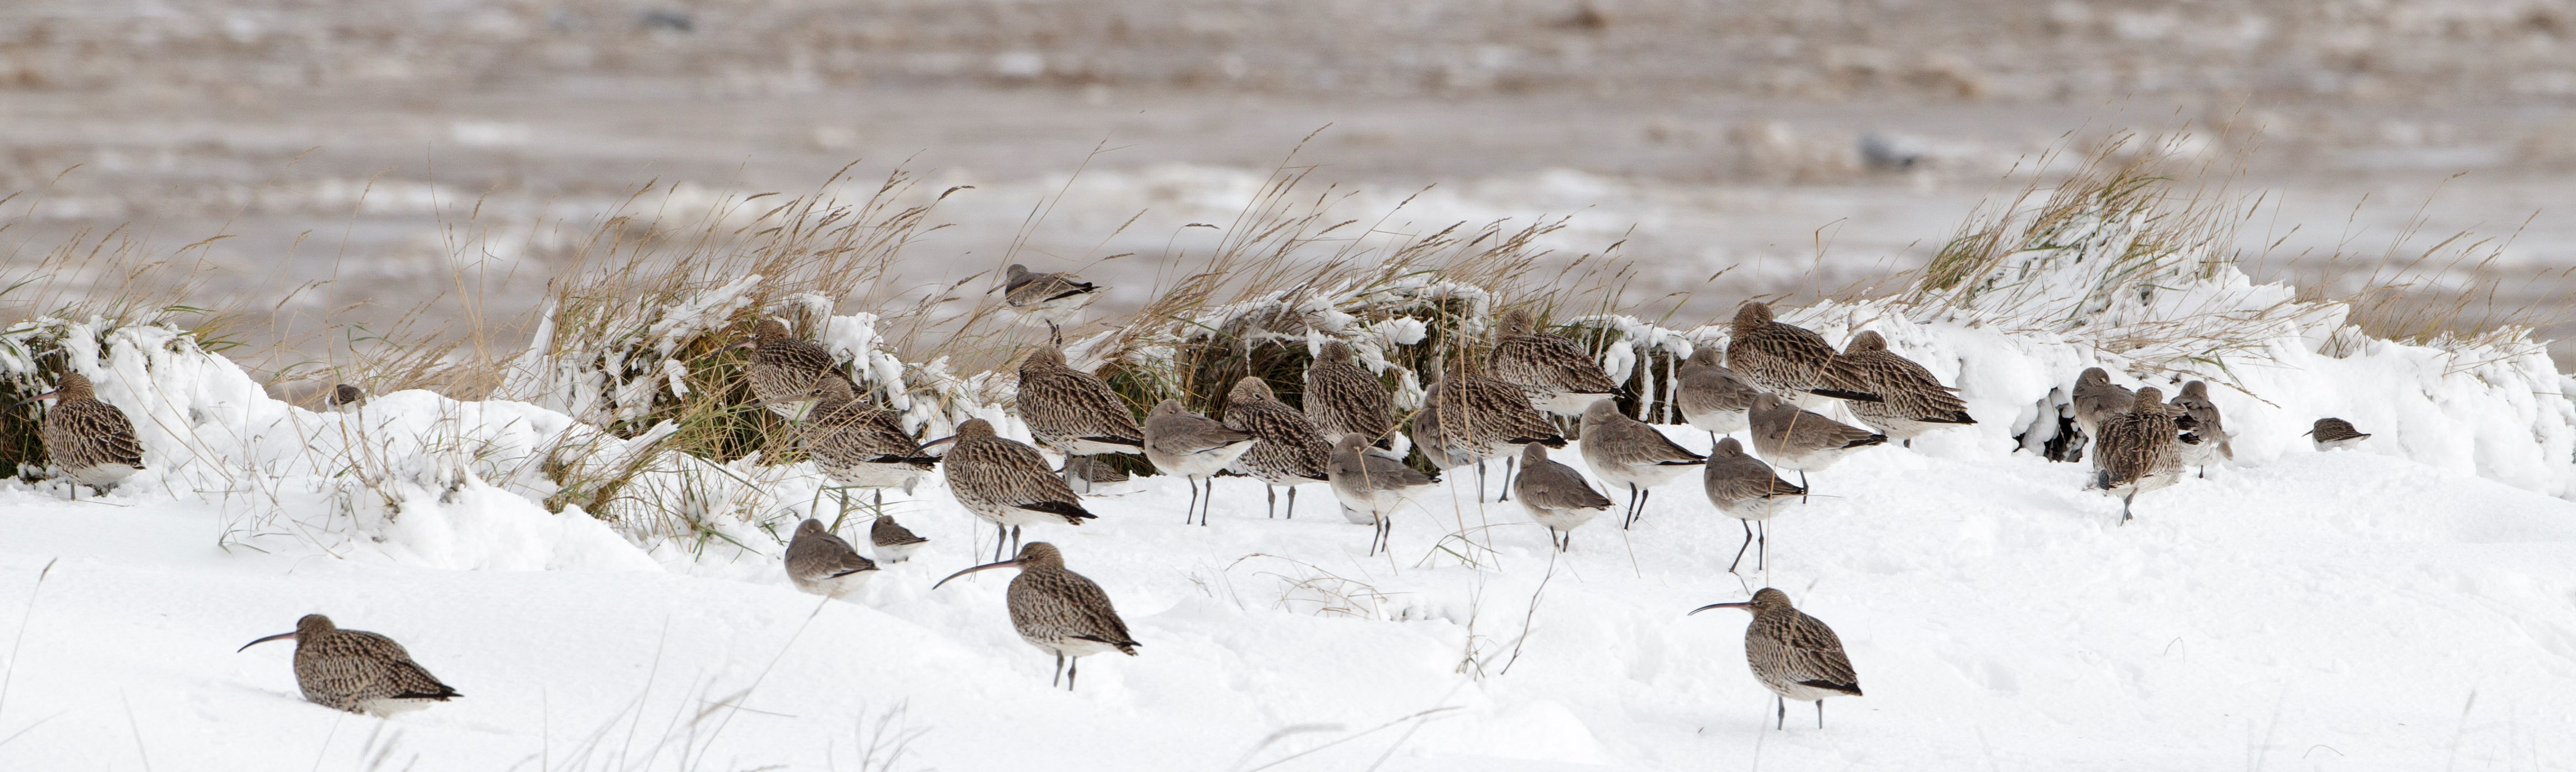 Curlew in snow